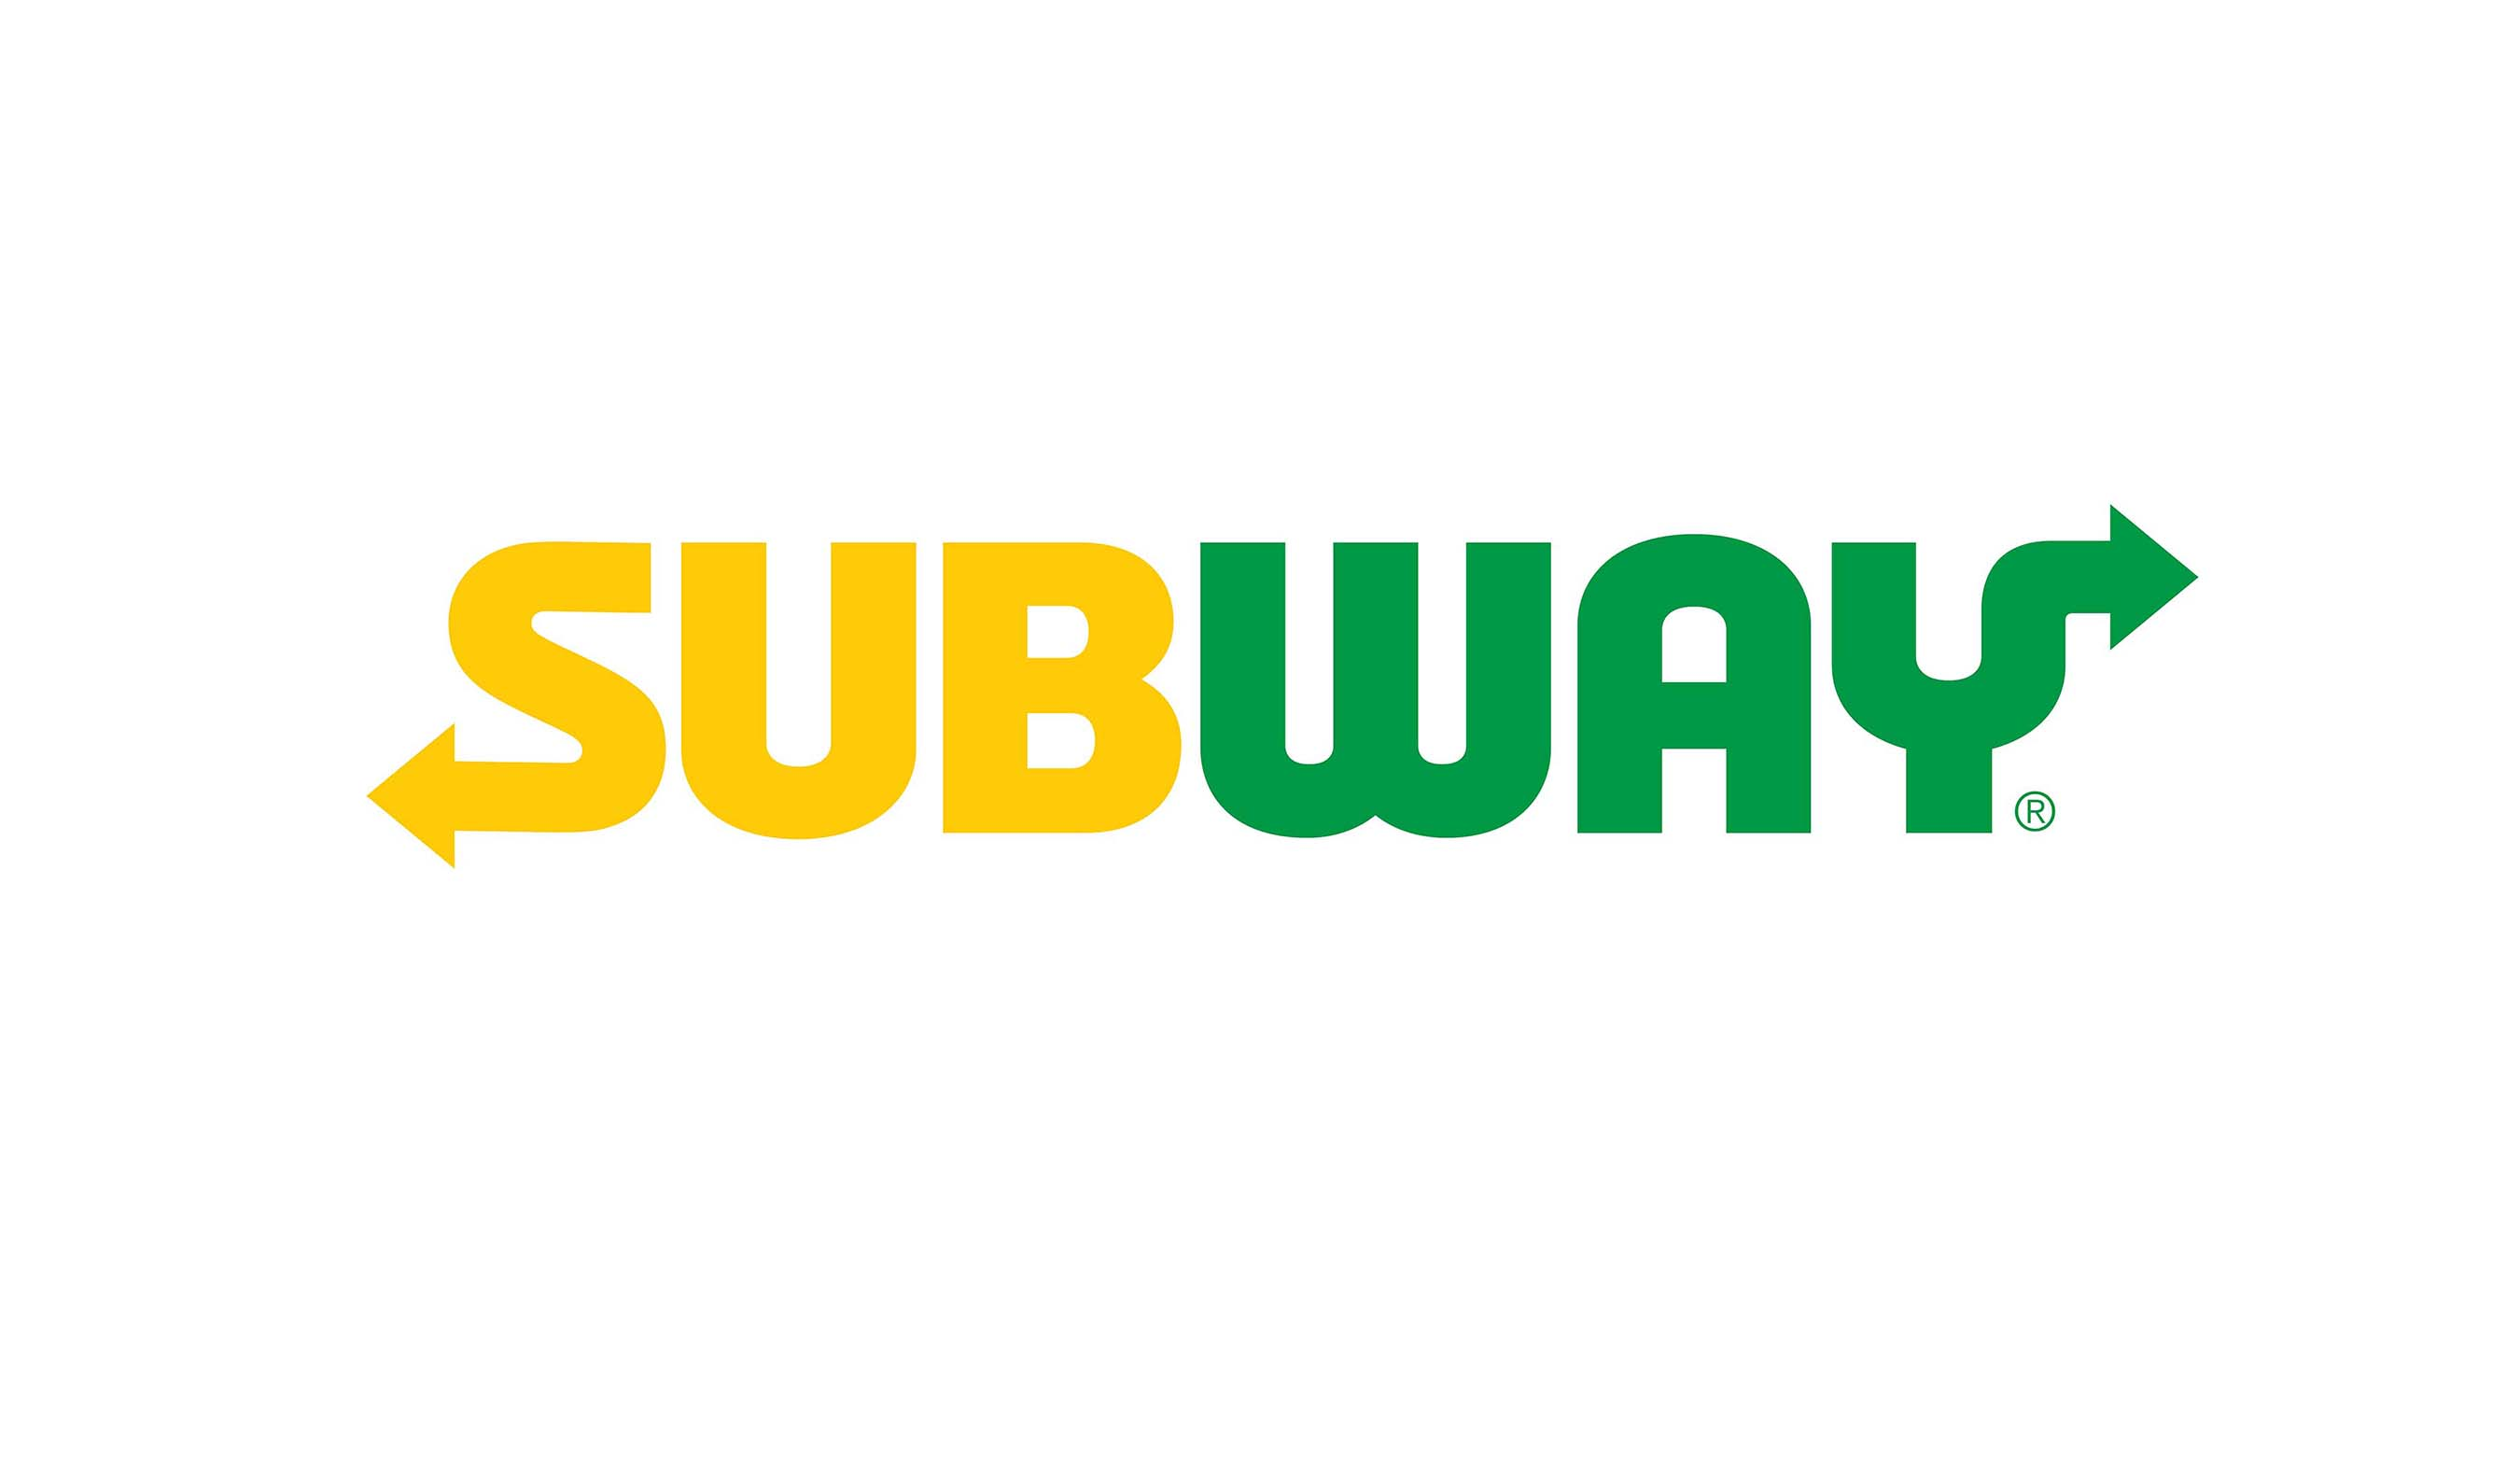 Subway Logo Eps PNG - 39035